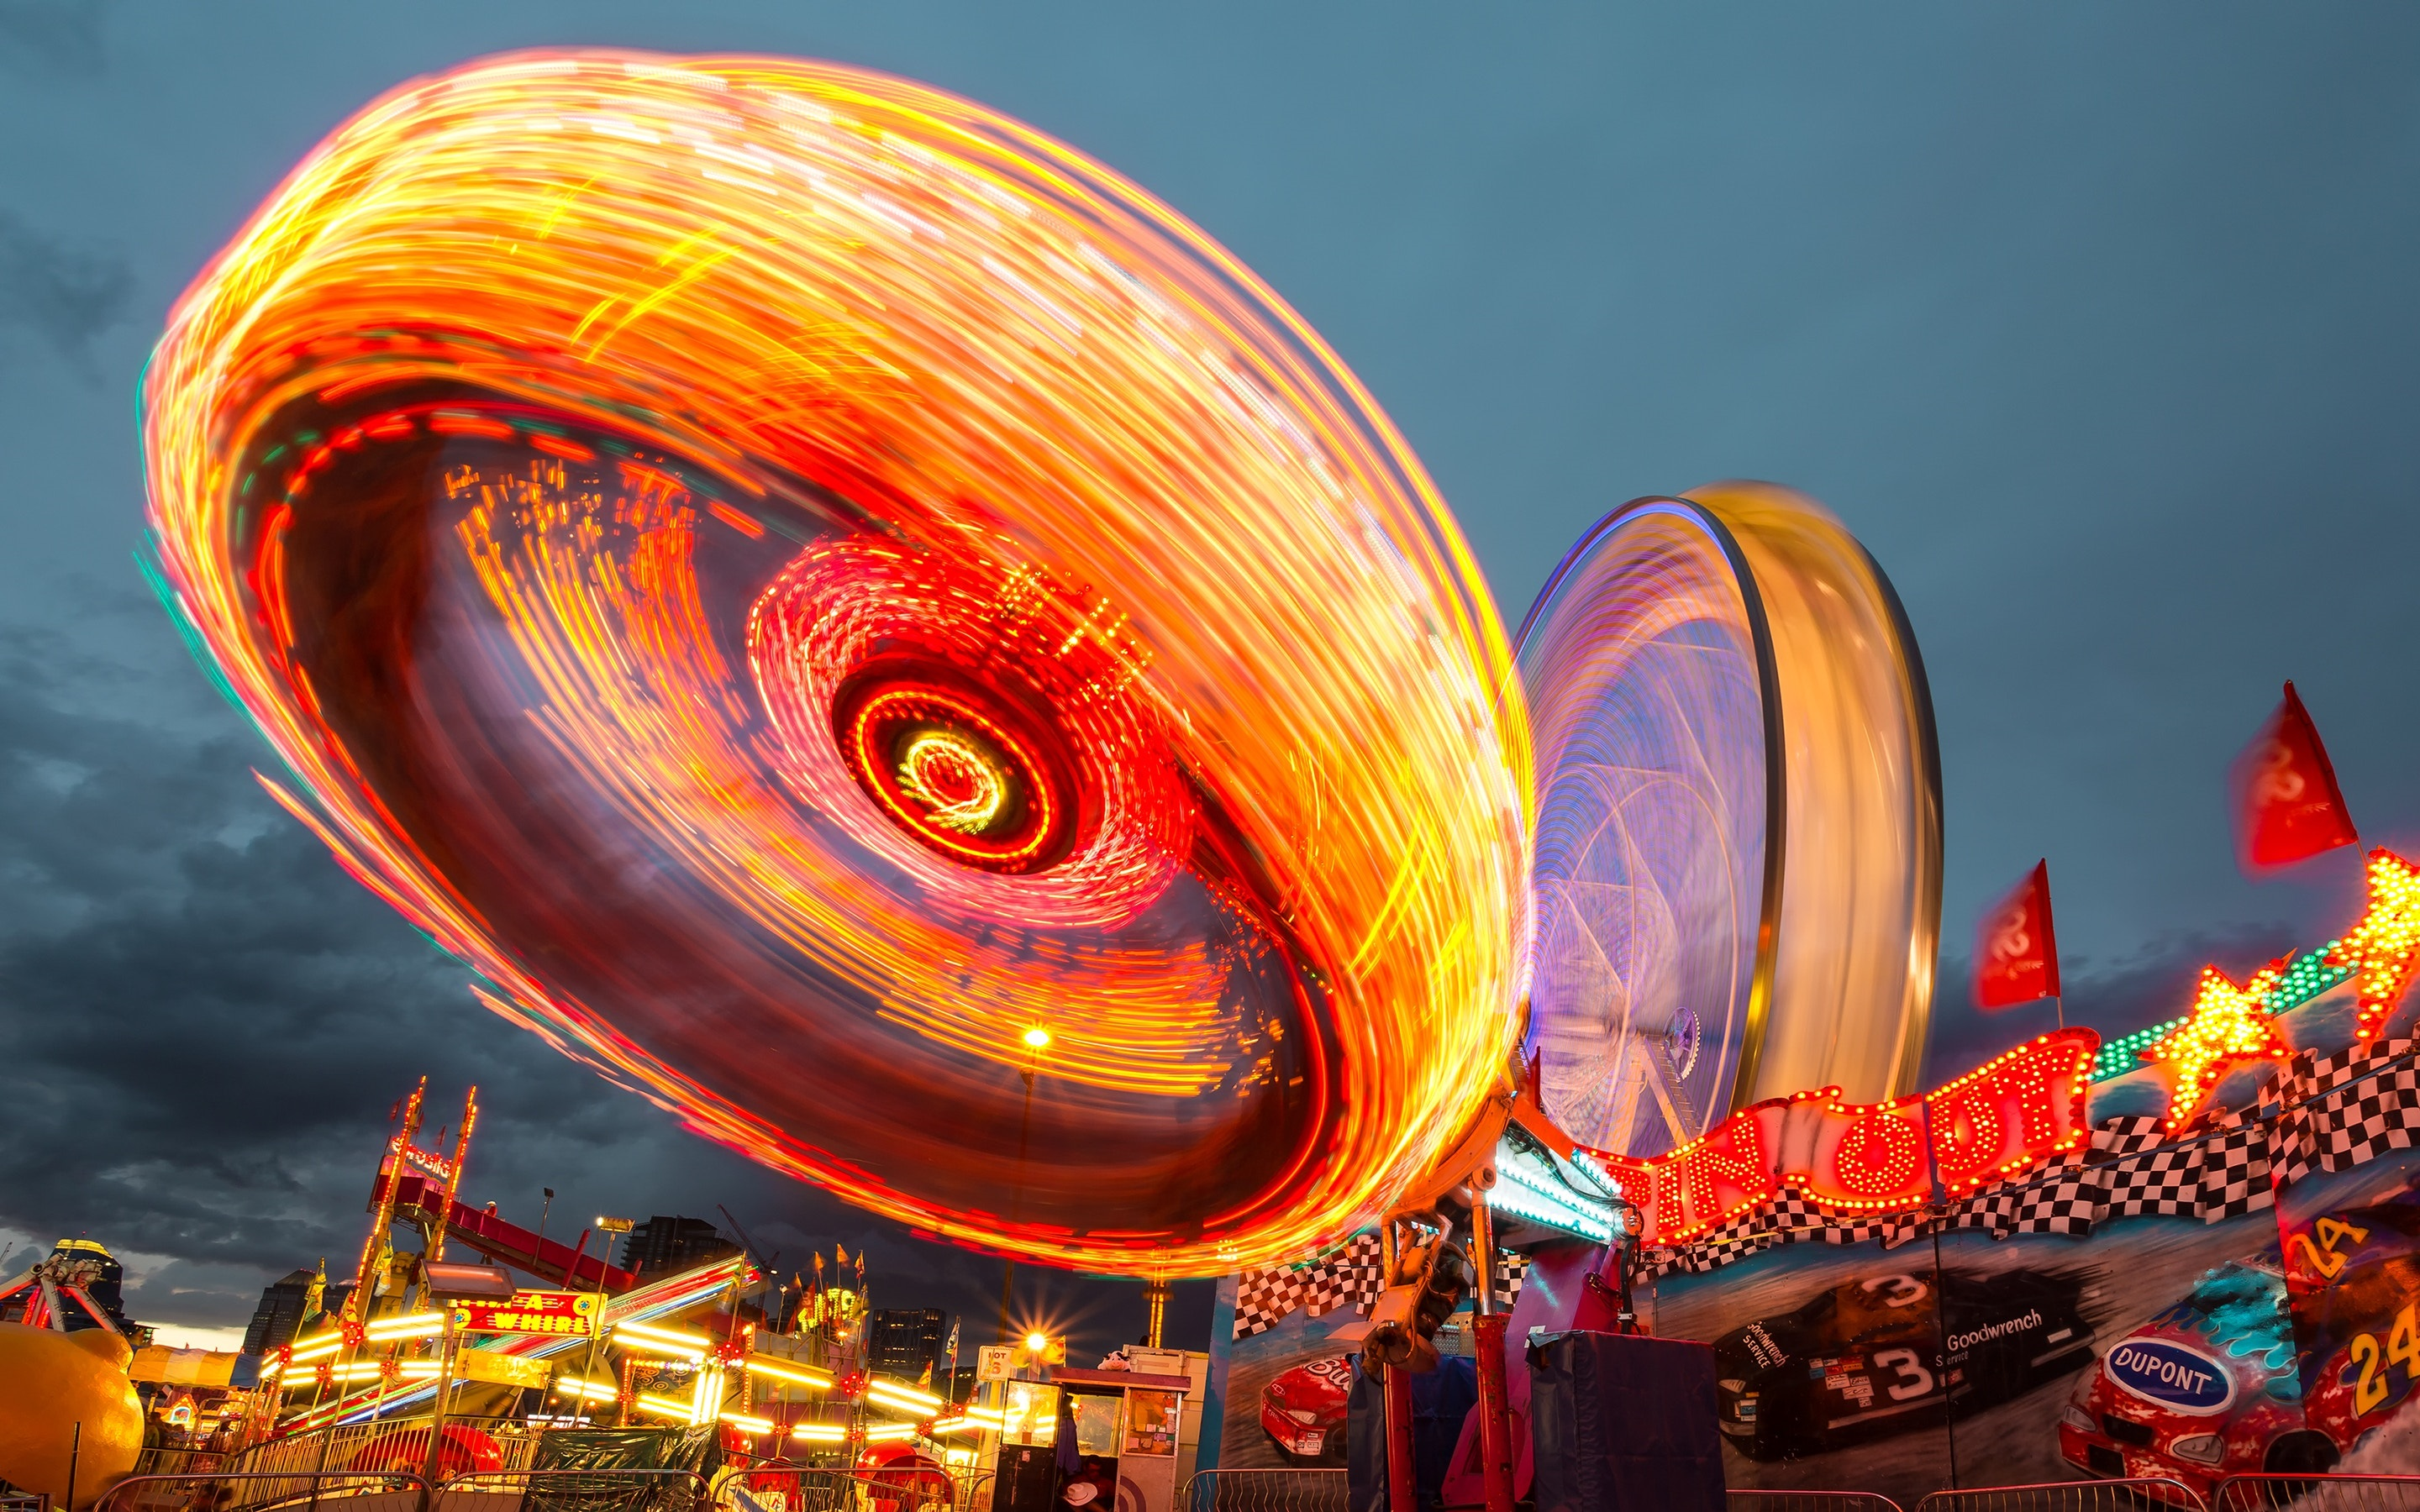 Image of an amusement park ride taken at night. Lights are blurring together to show motion and rides are lit brightly red, orange, and burgundy.